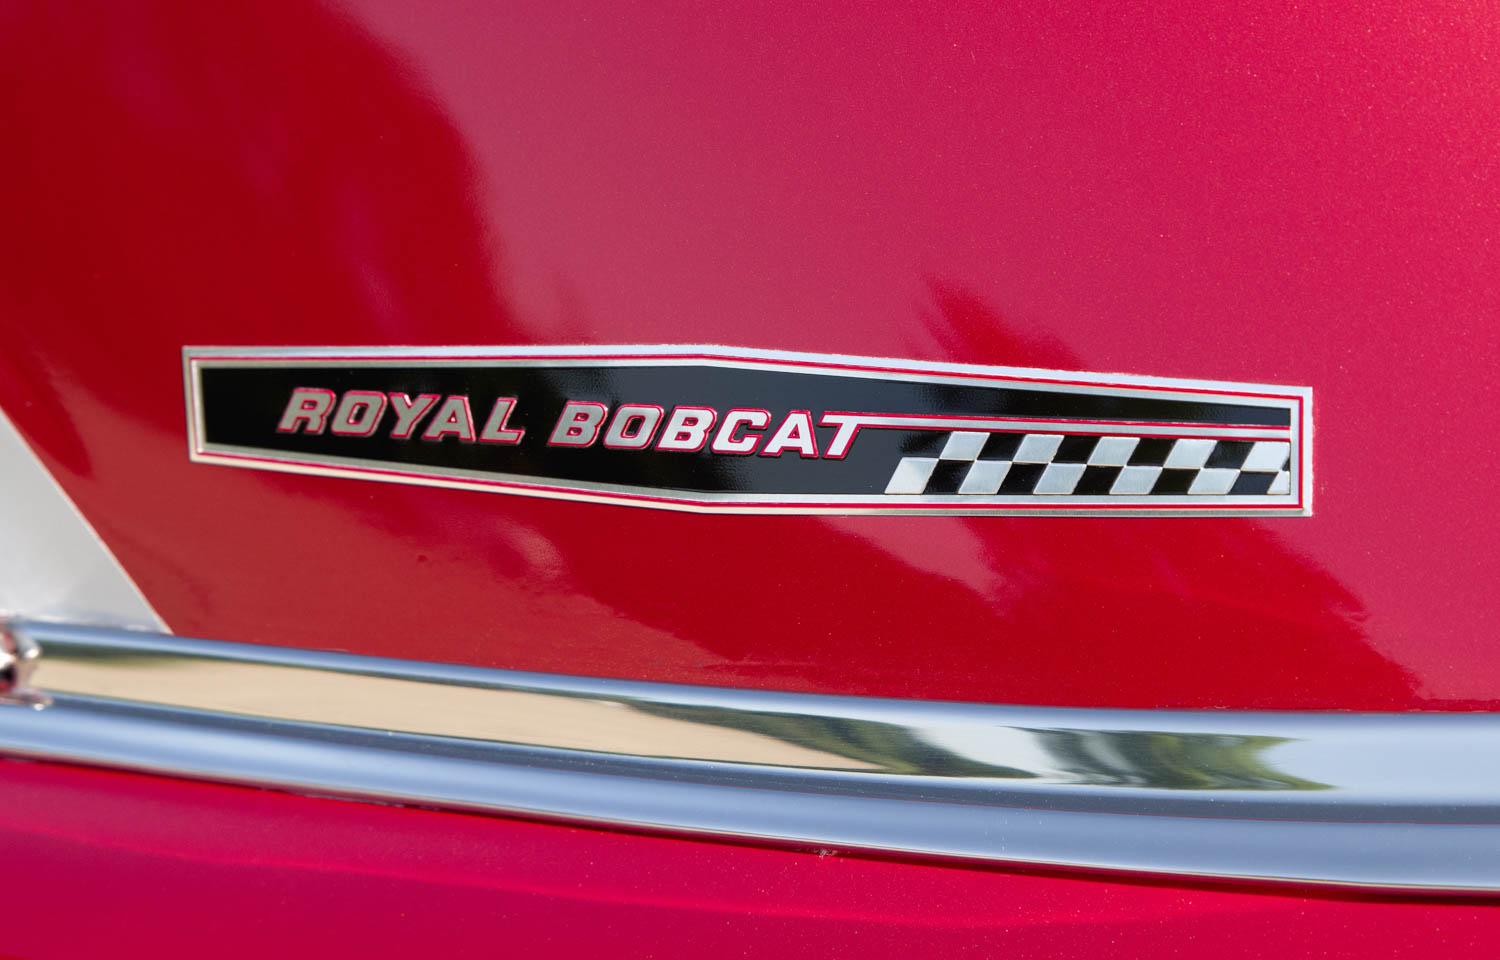 An identifying badge on the C-pillar indicates this is a '62 Catalina Royal Bobcat.